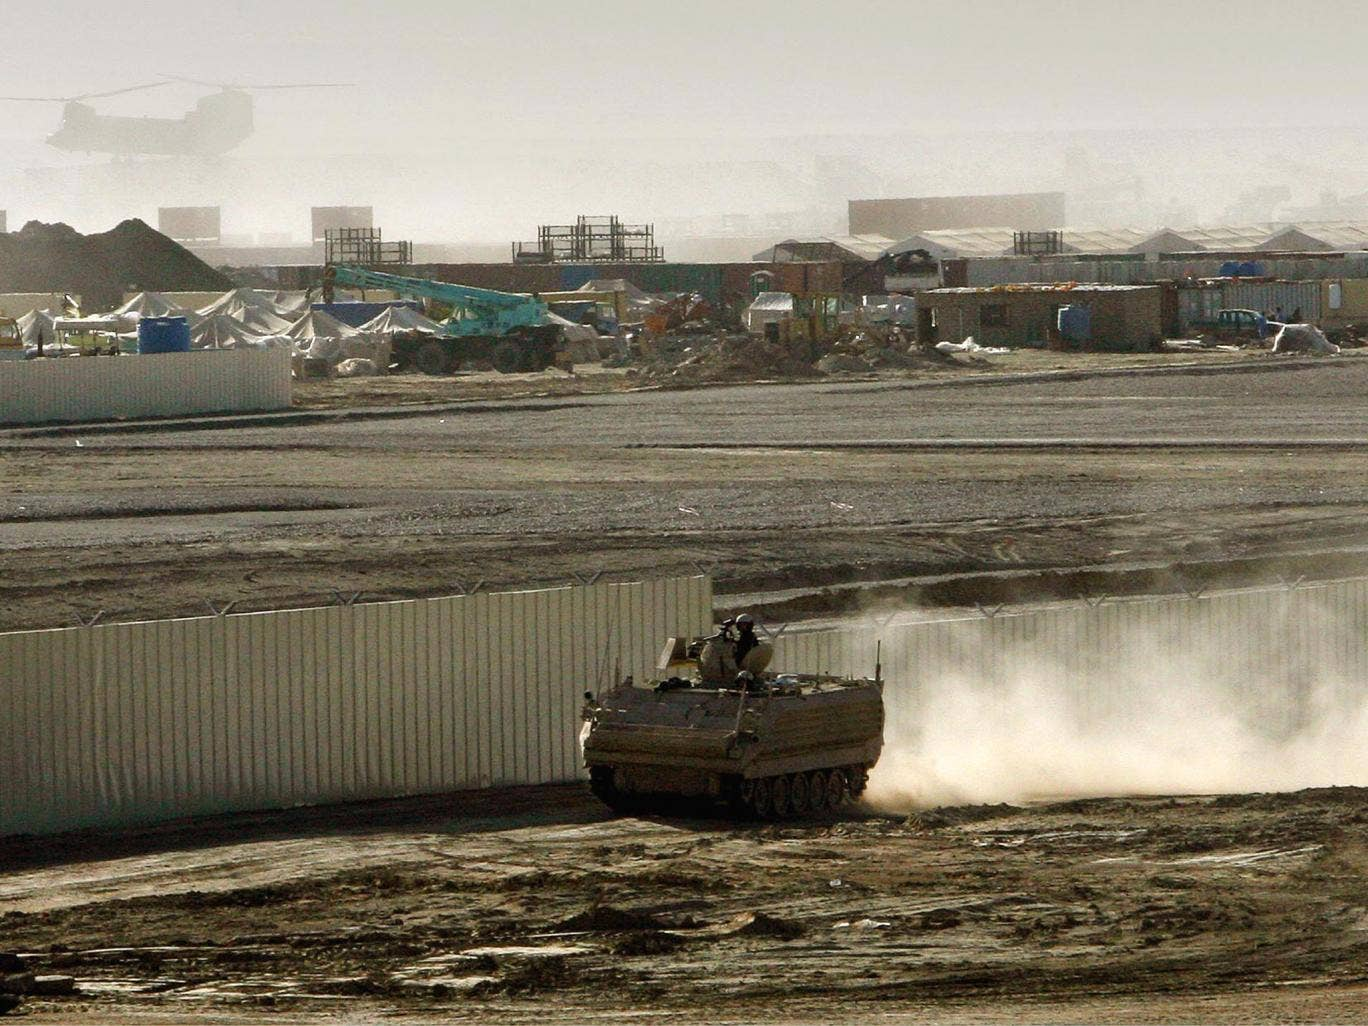 A British armored vehicle patrols on the periphery of the camp Bastion in southern Afghanistan in 2007